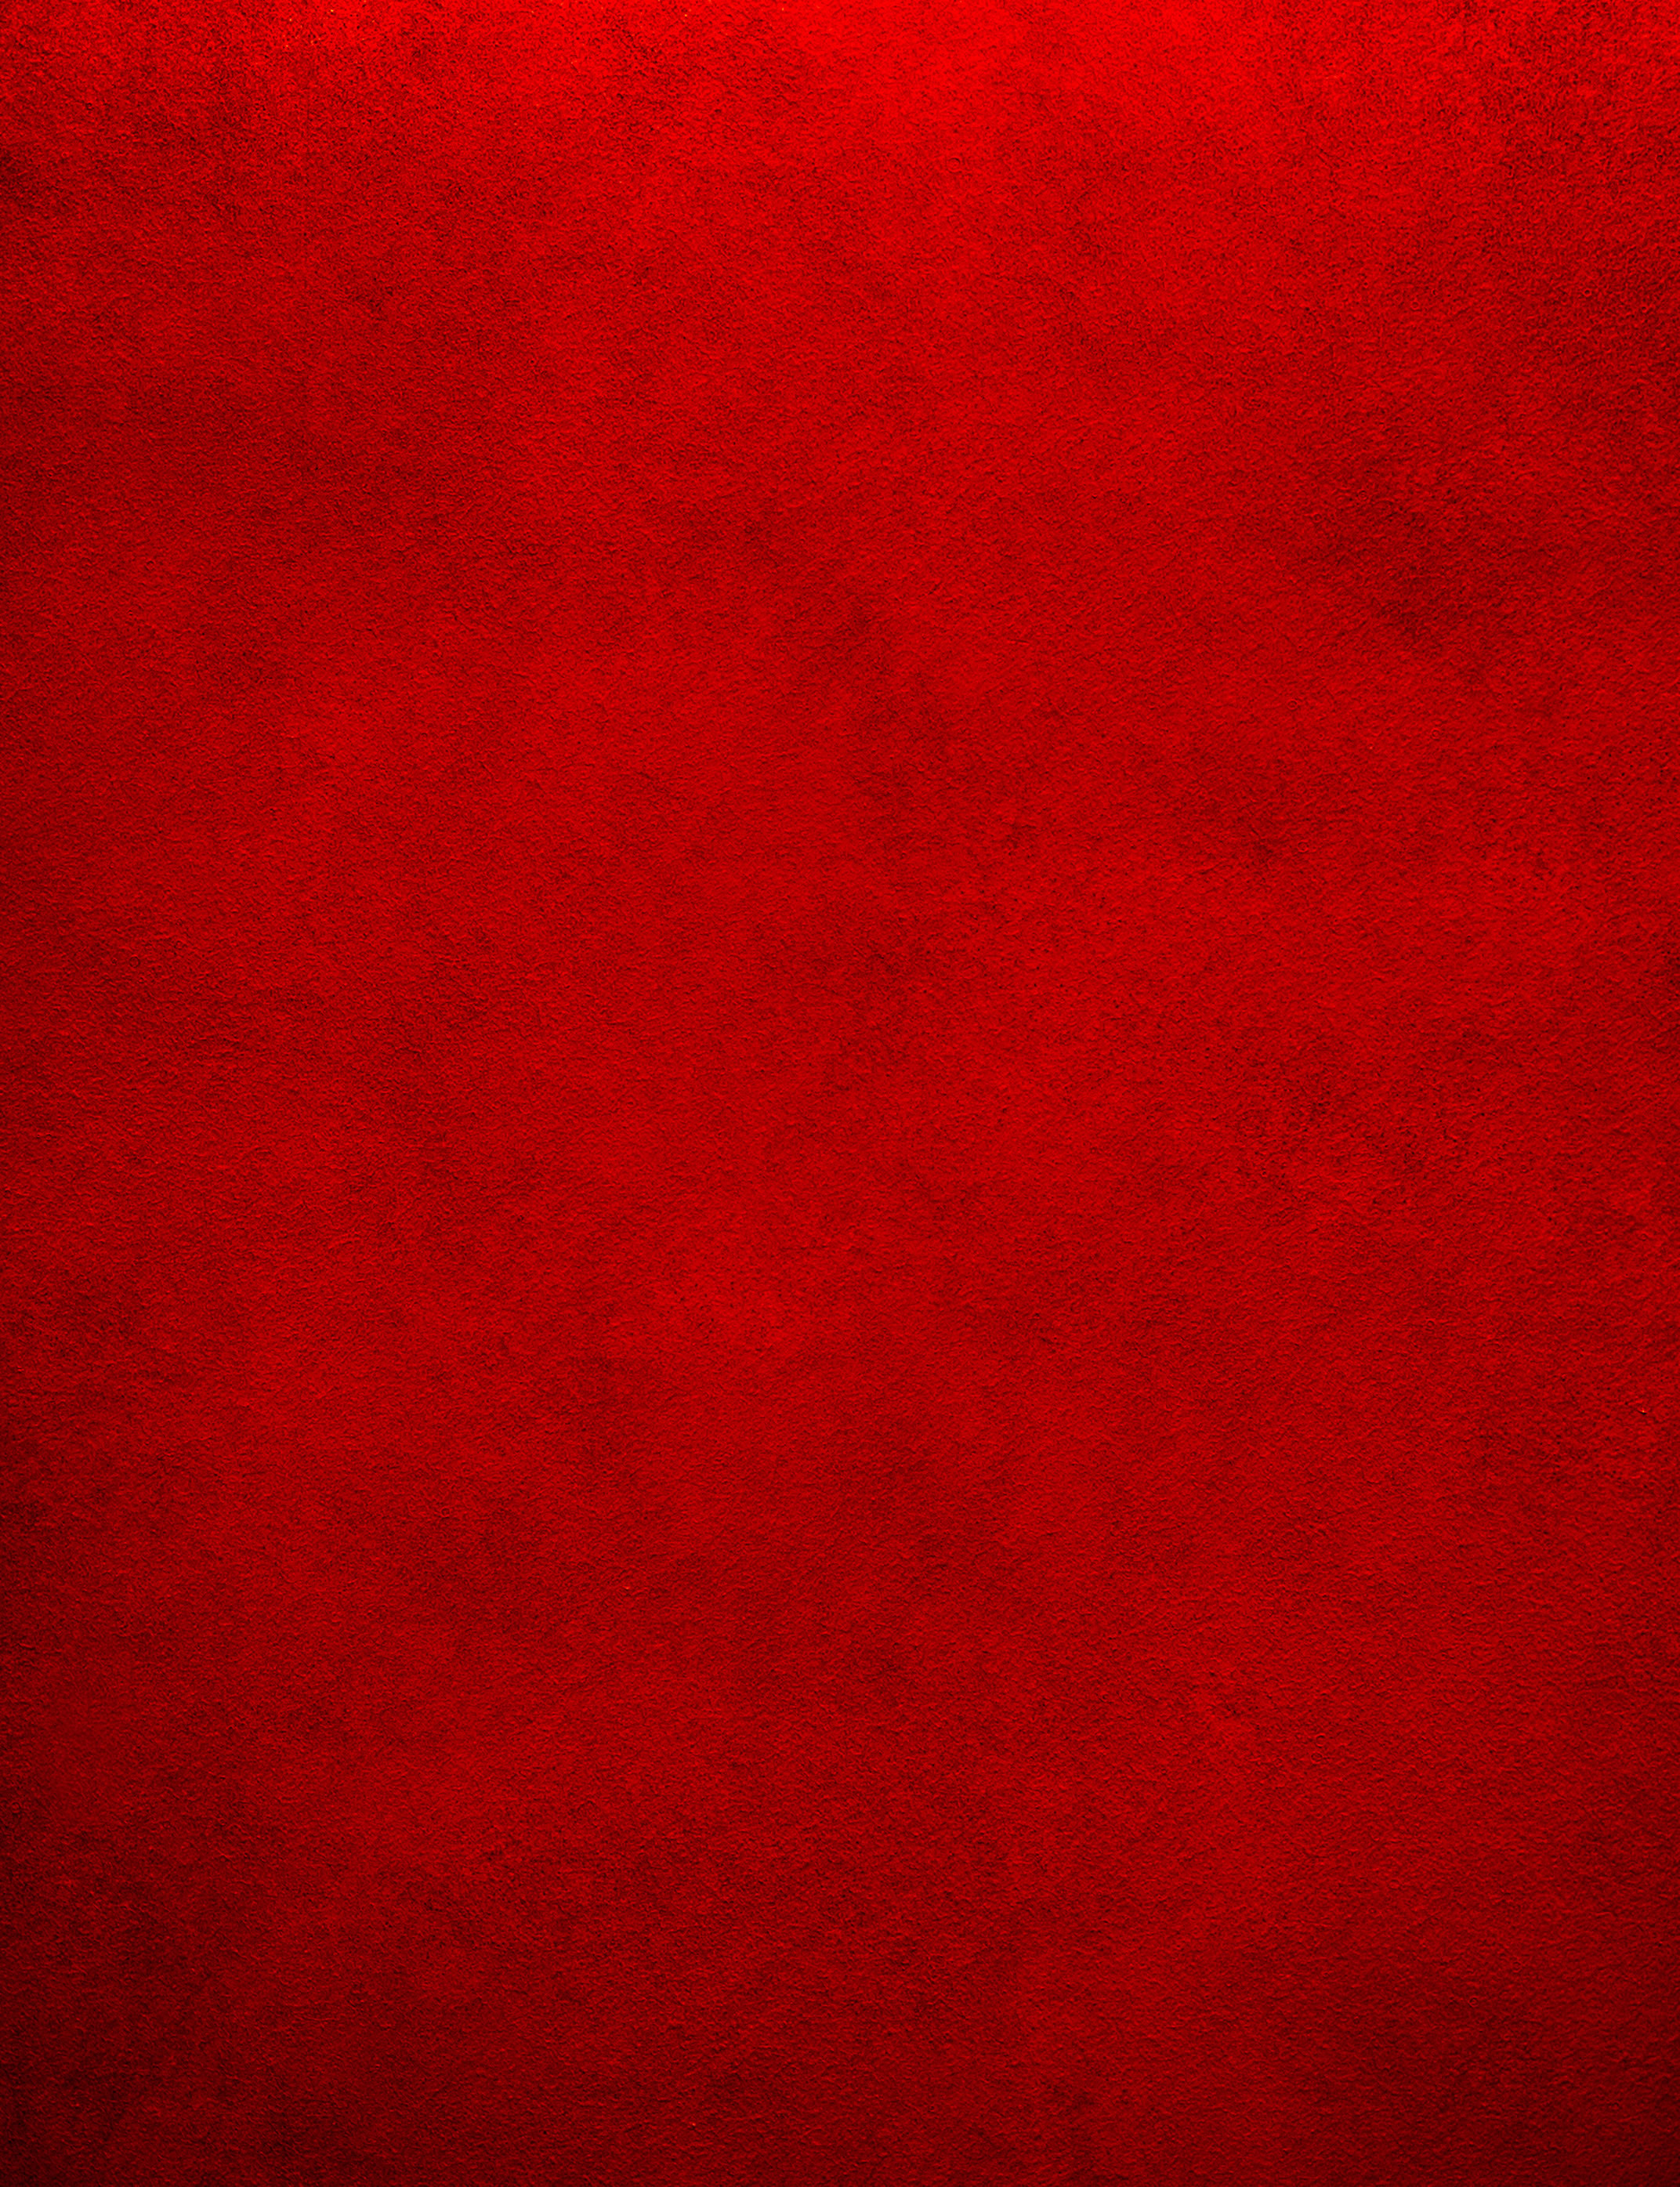 red textured background hd - photo #28